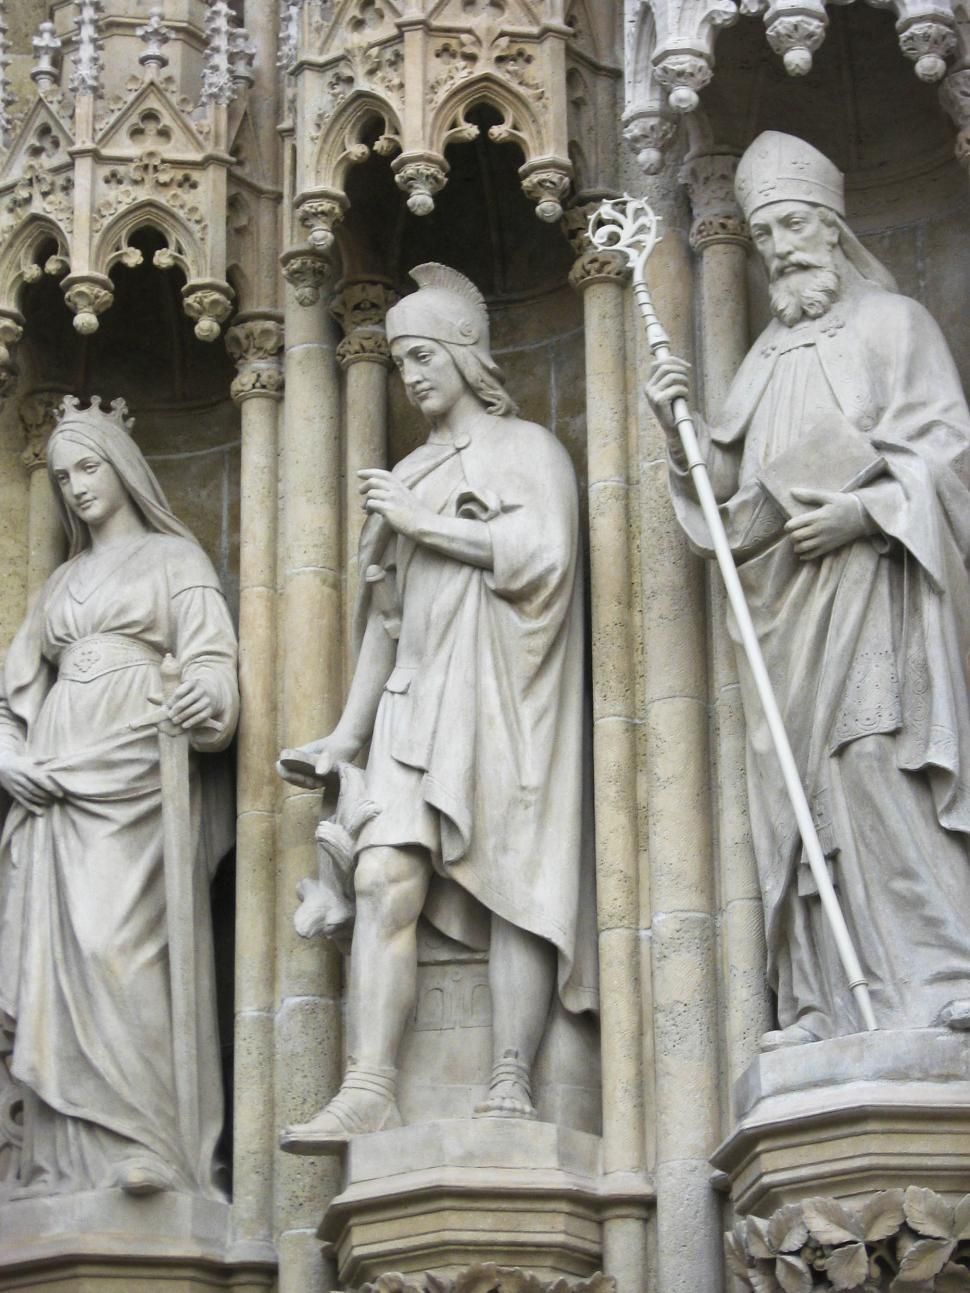 Free image of Carved figures at the Zagreb Cathedral, Zagreb, Croatia